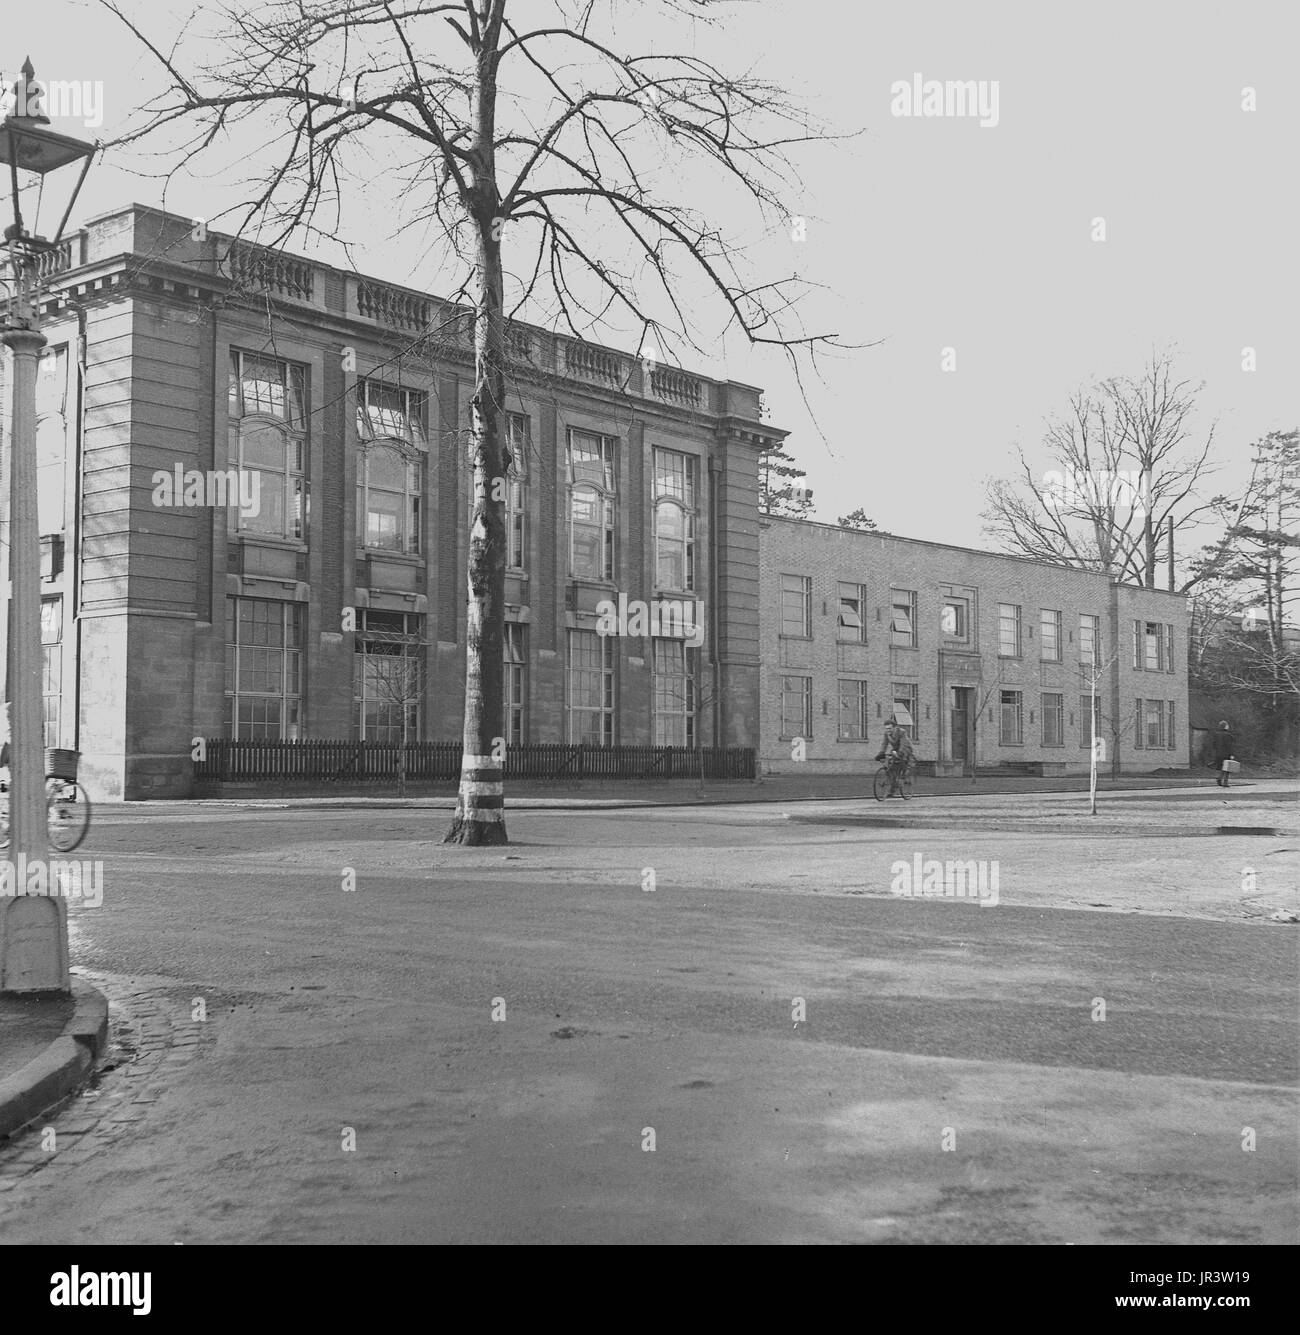 1948, historical, exterior view of the building in South Parks Rd, Oxford, housing the Dyson Perrins laboratory, which was the main centre for research into organic chemistry at the world famous Oxford University, Oxford, England, UK. - Stock Image